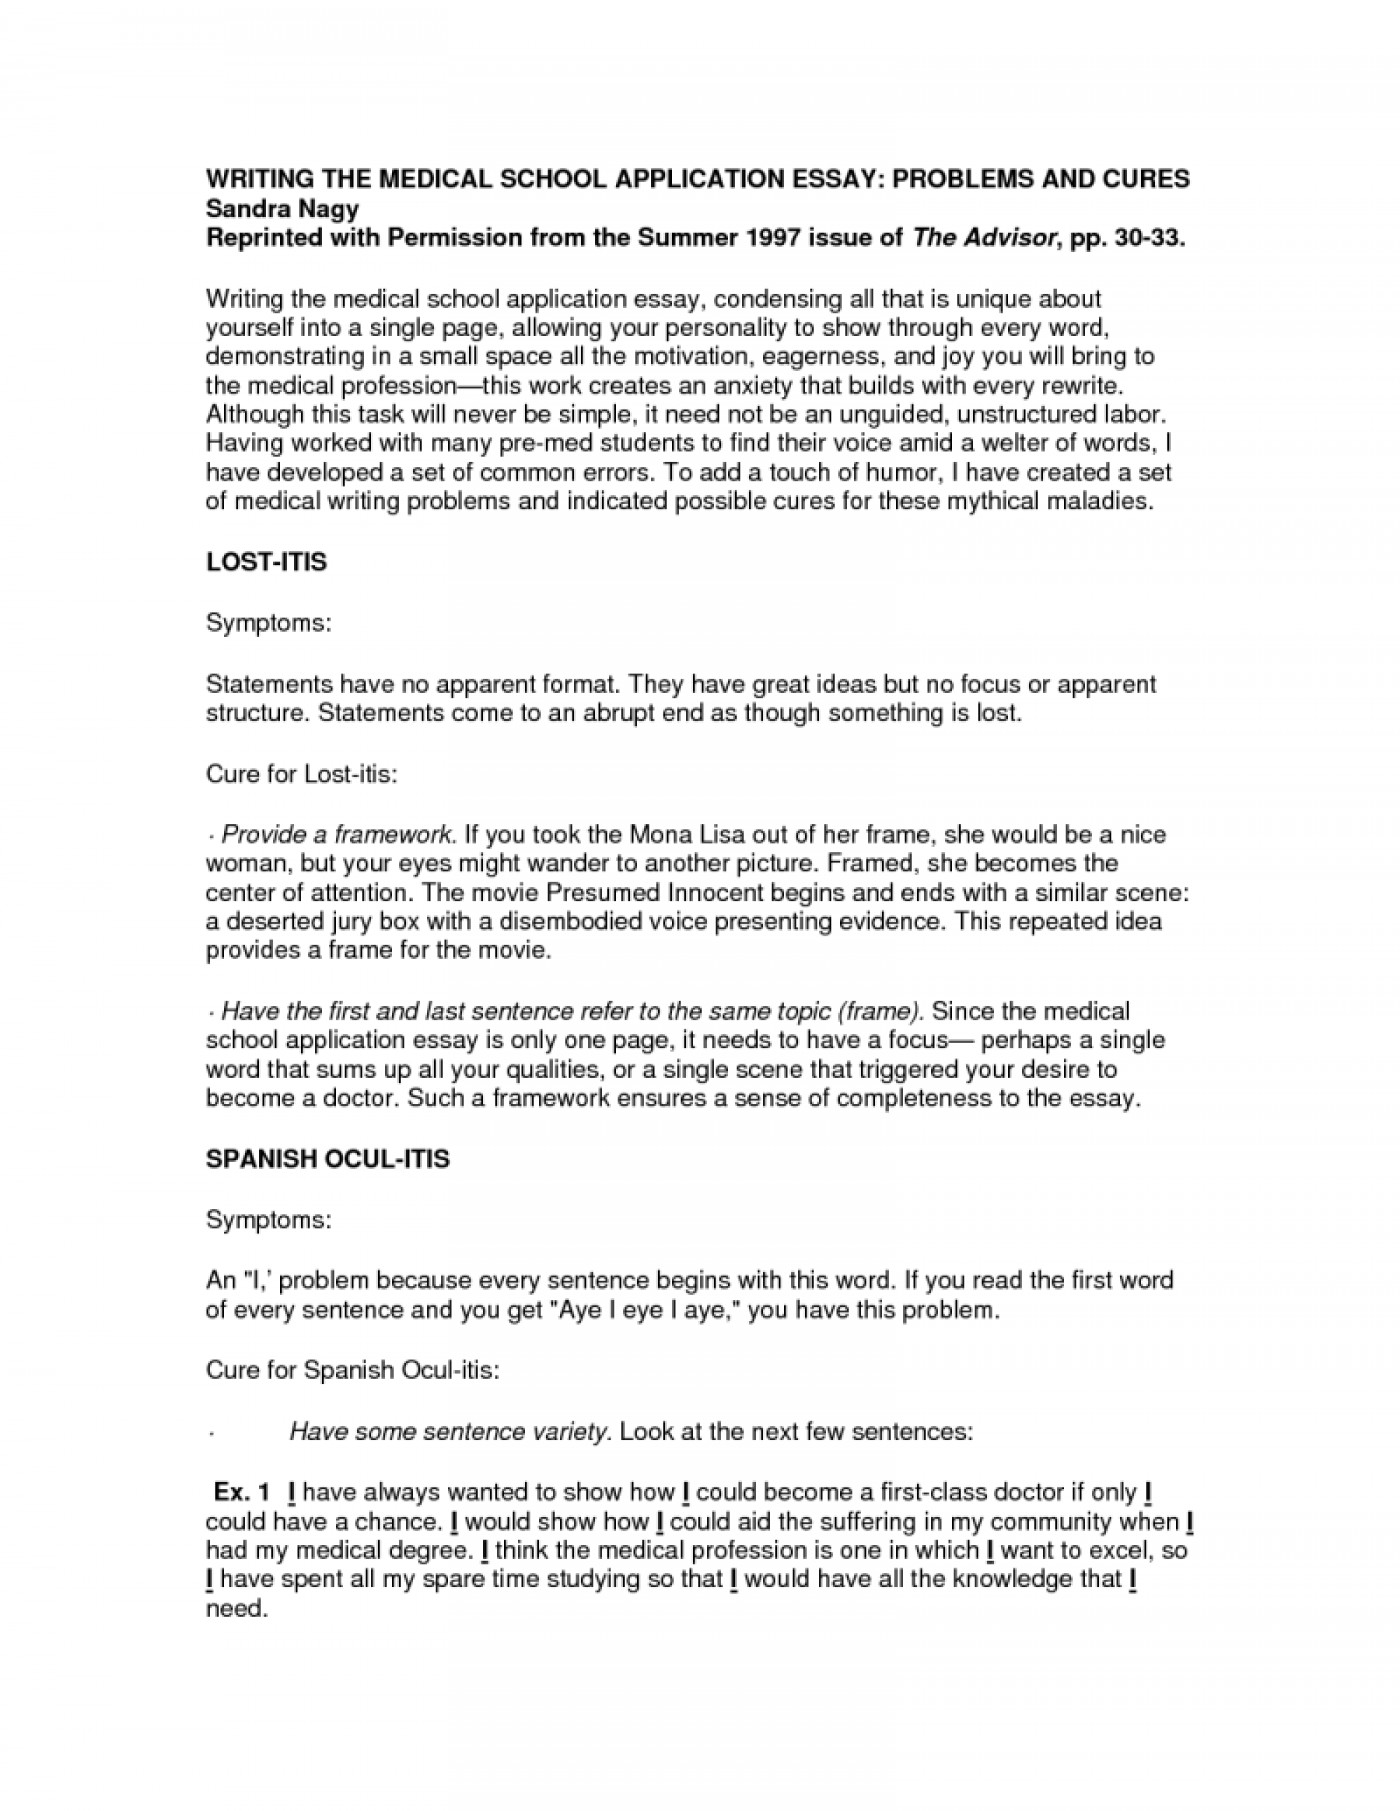 005 Examples Of Good College Application Essays On Compare And Contrast This I Believe Essay Template Qdbqo Topics Samples Fearsome Funny Prompt 1400